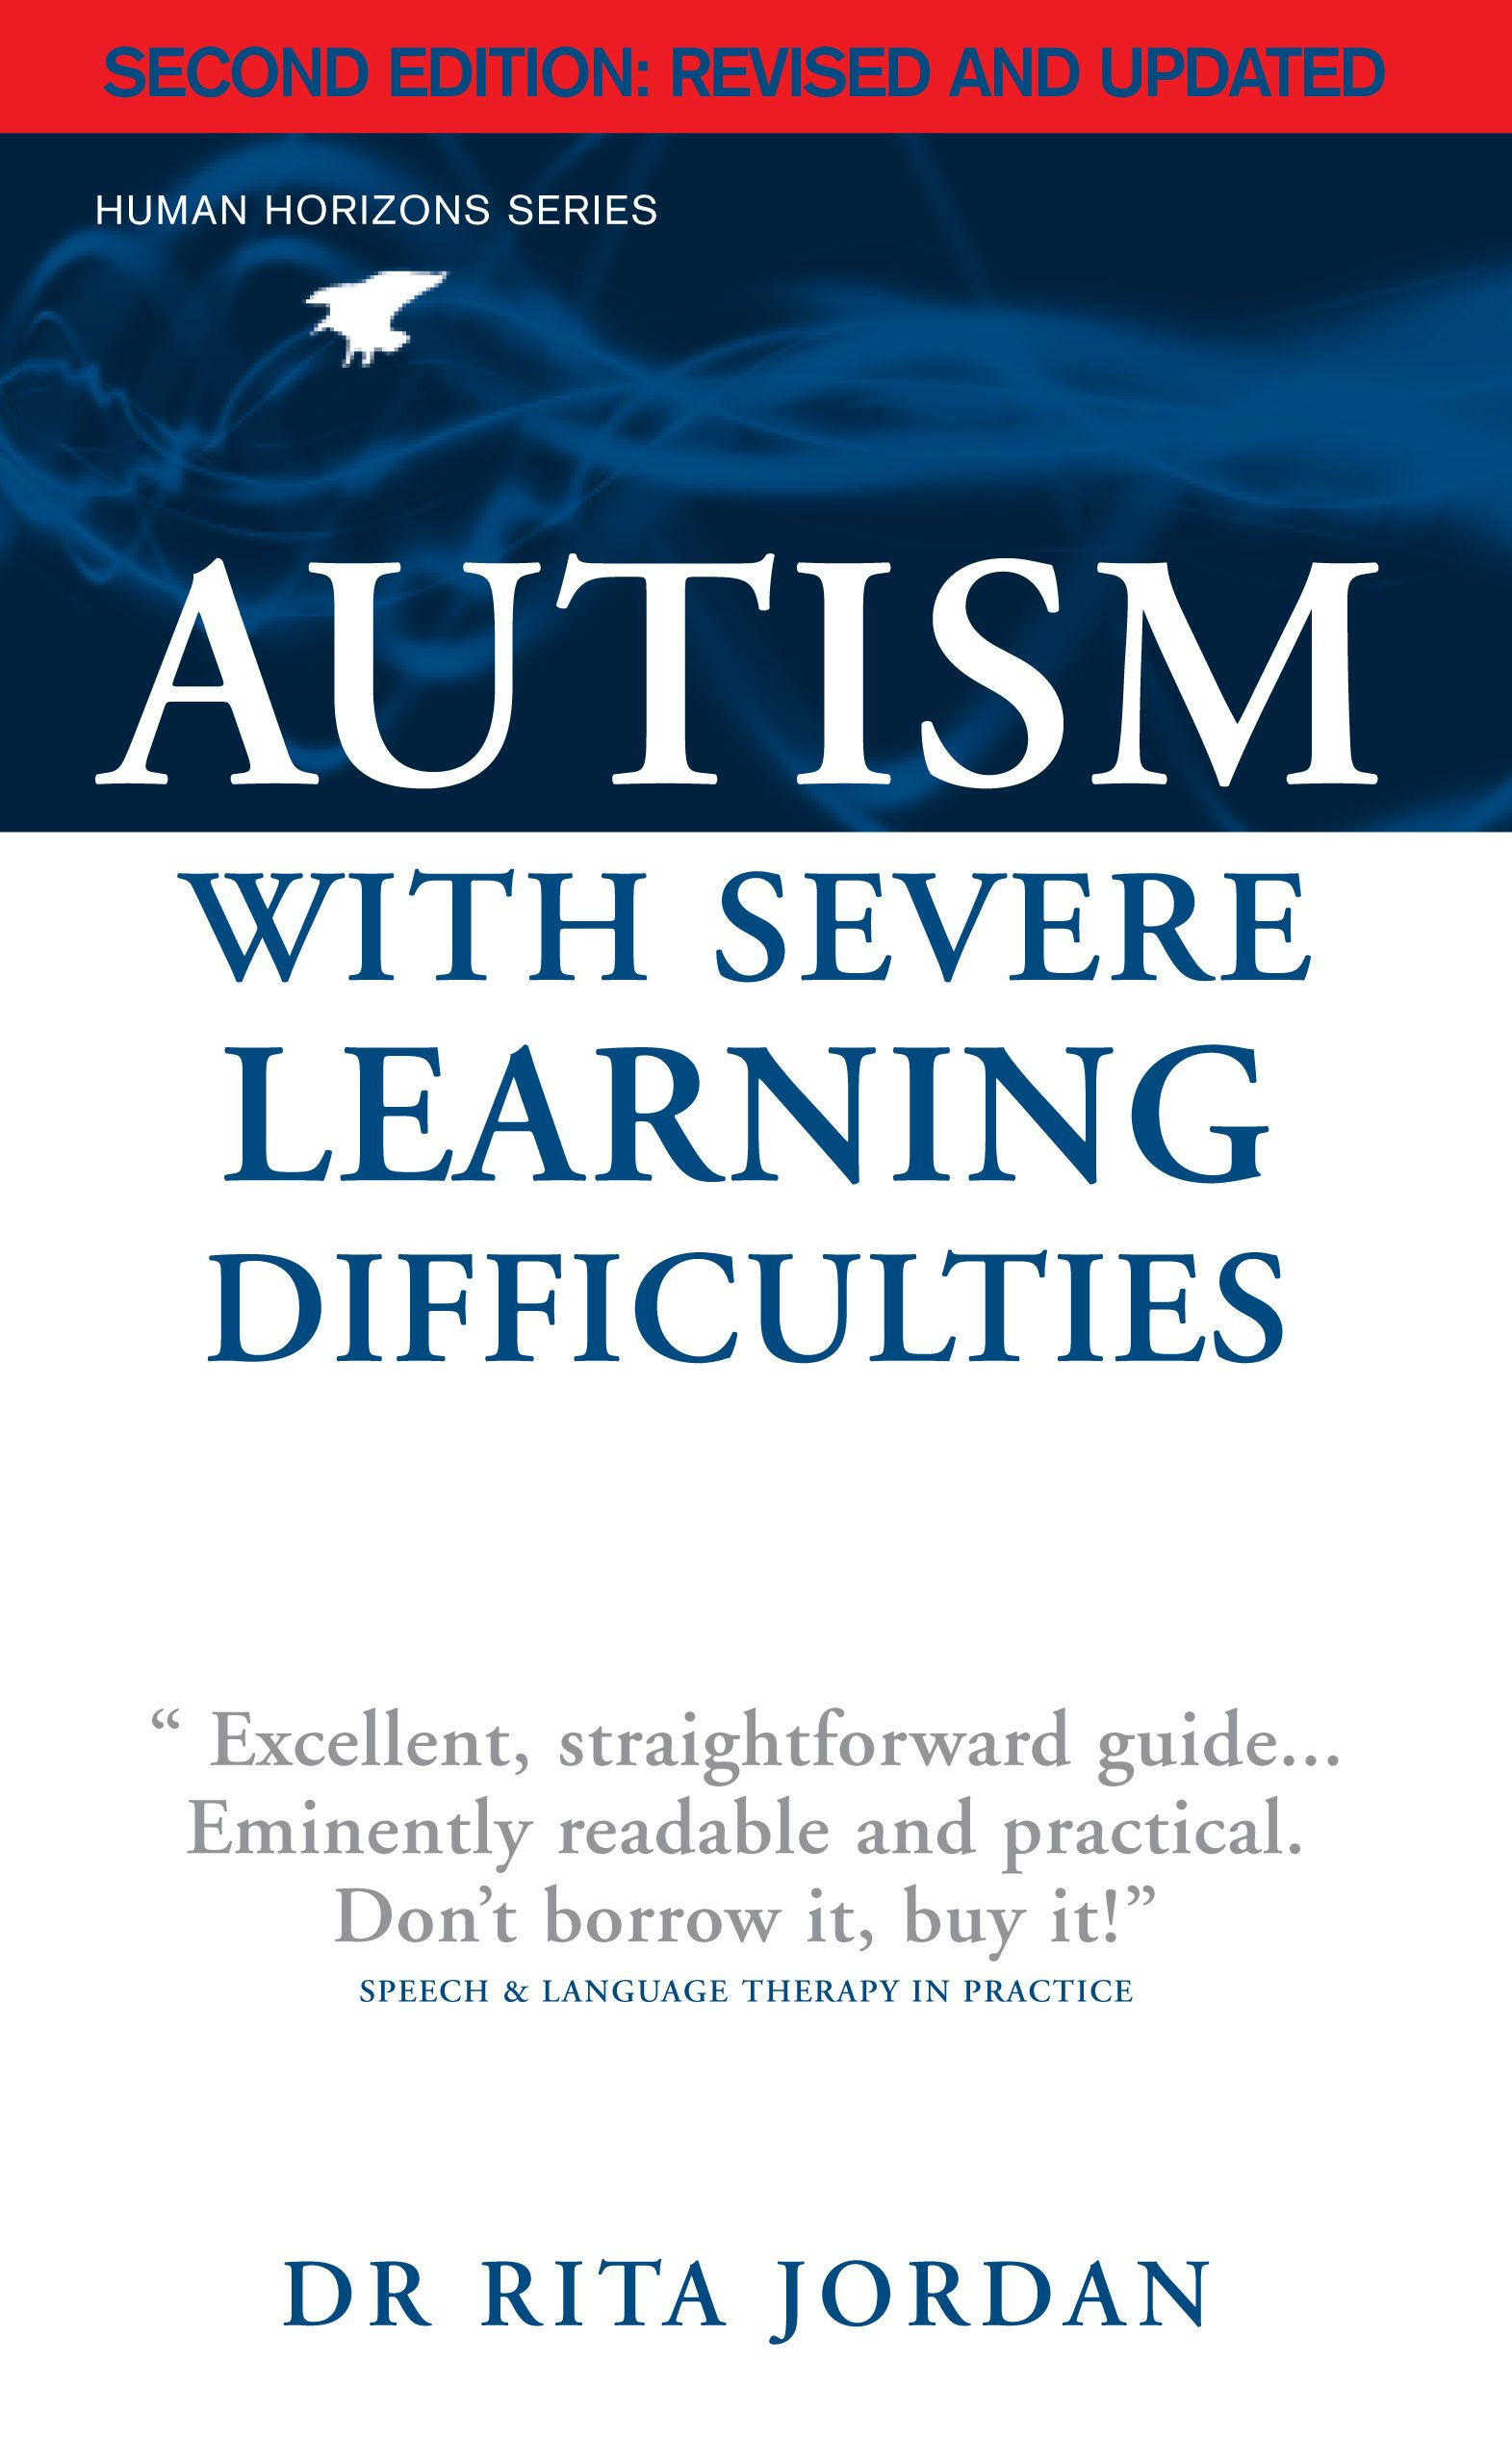 Autism with Severe Learning Difficulties Human Horizons Human